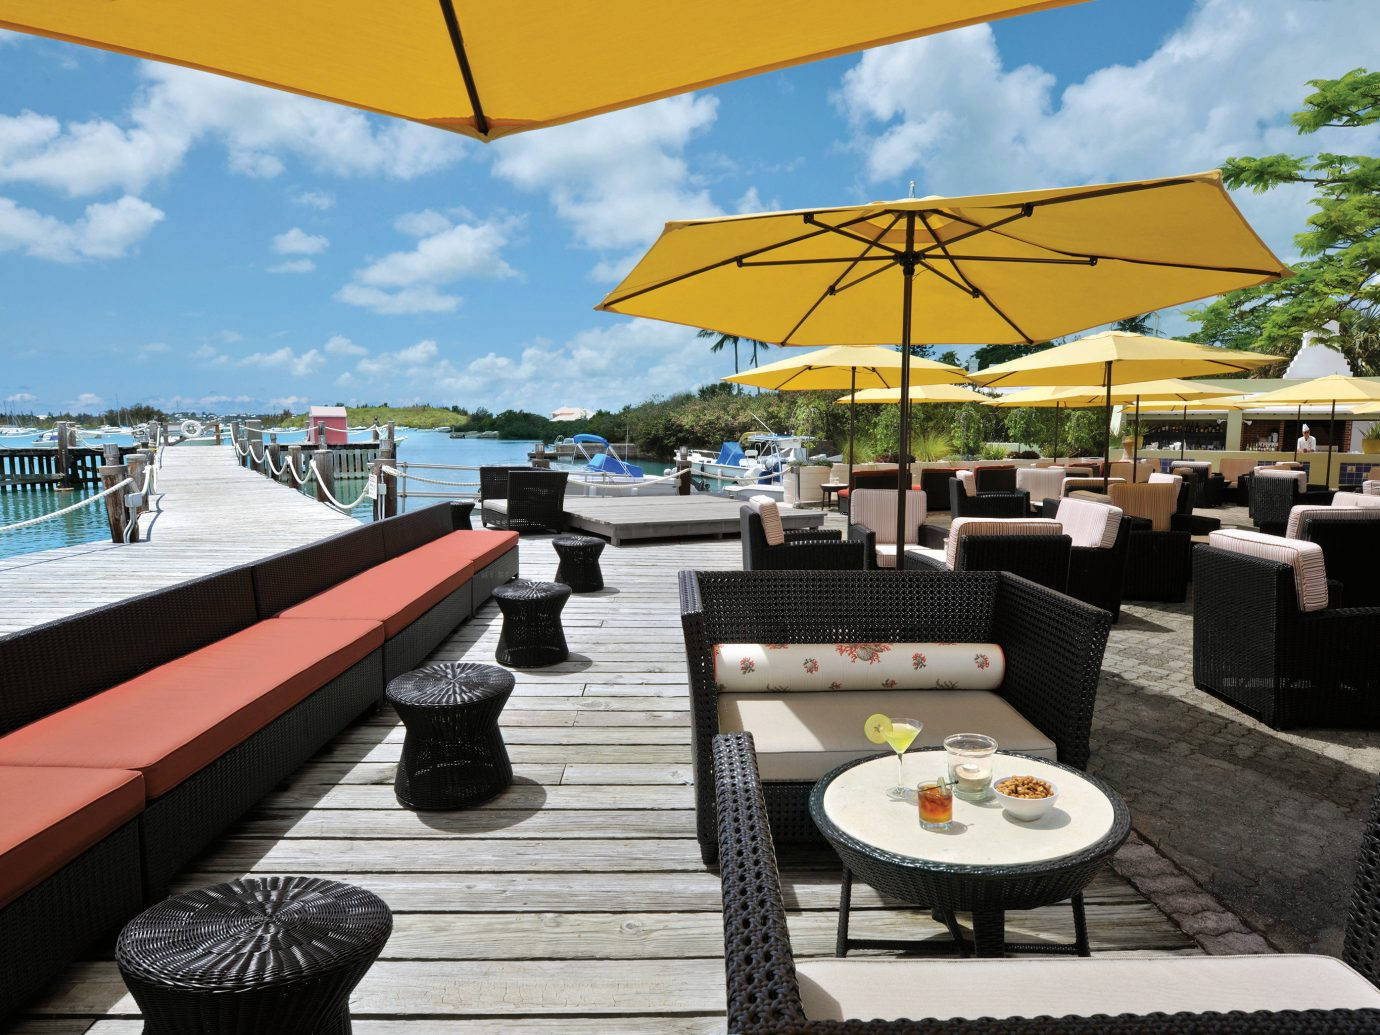 Bar Beachfront Dining Drink Eat Hotels Scenic views sky table outdoor leisure umbrella accessory restaurant vacation Resort vehicle yacht